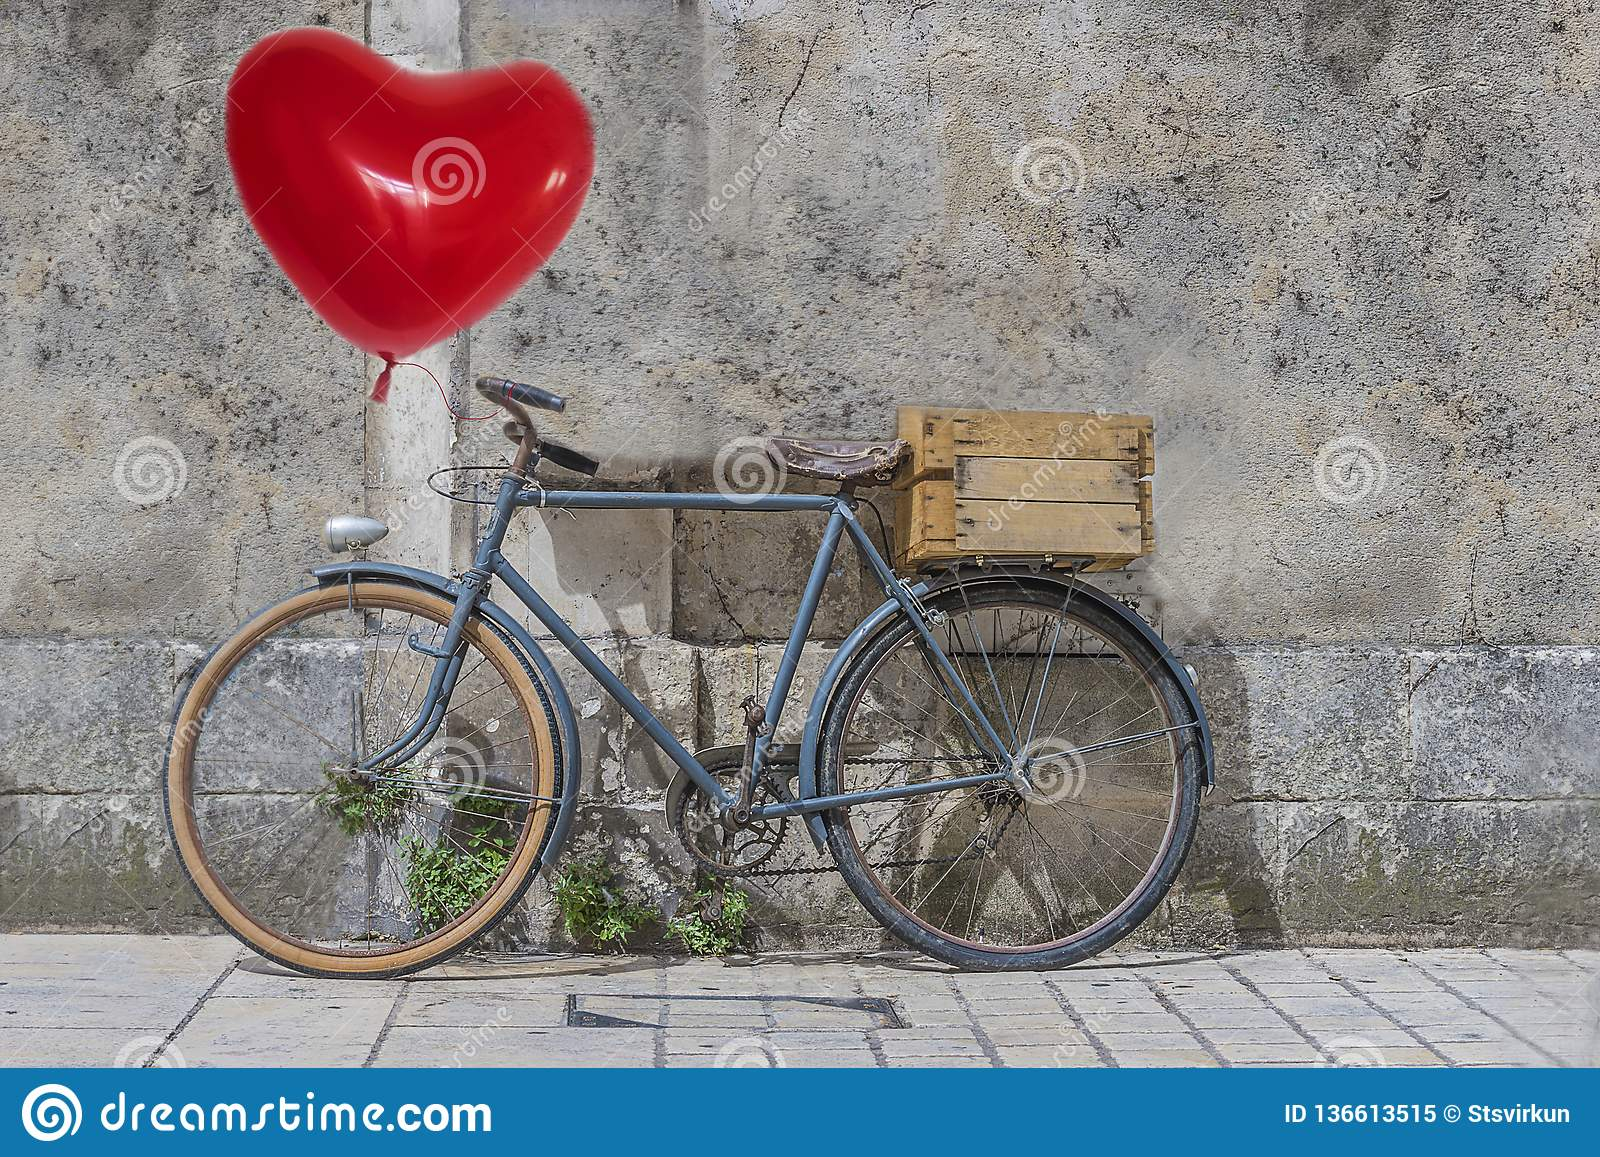 Valentines Day Concept With Red Heart Balloon And Vintage Bike